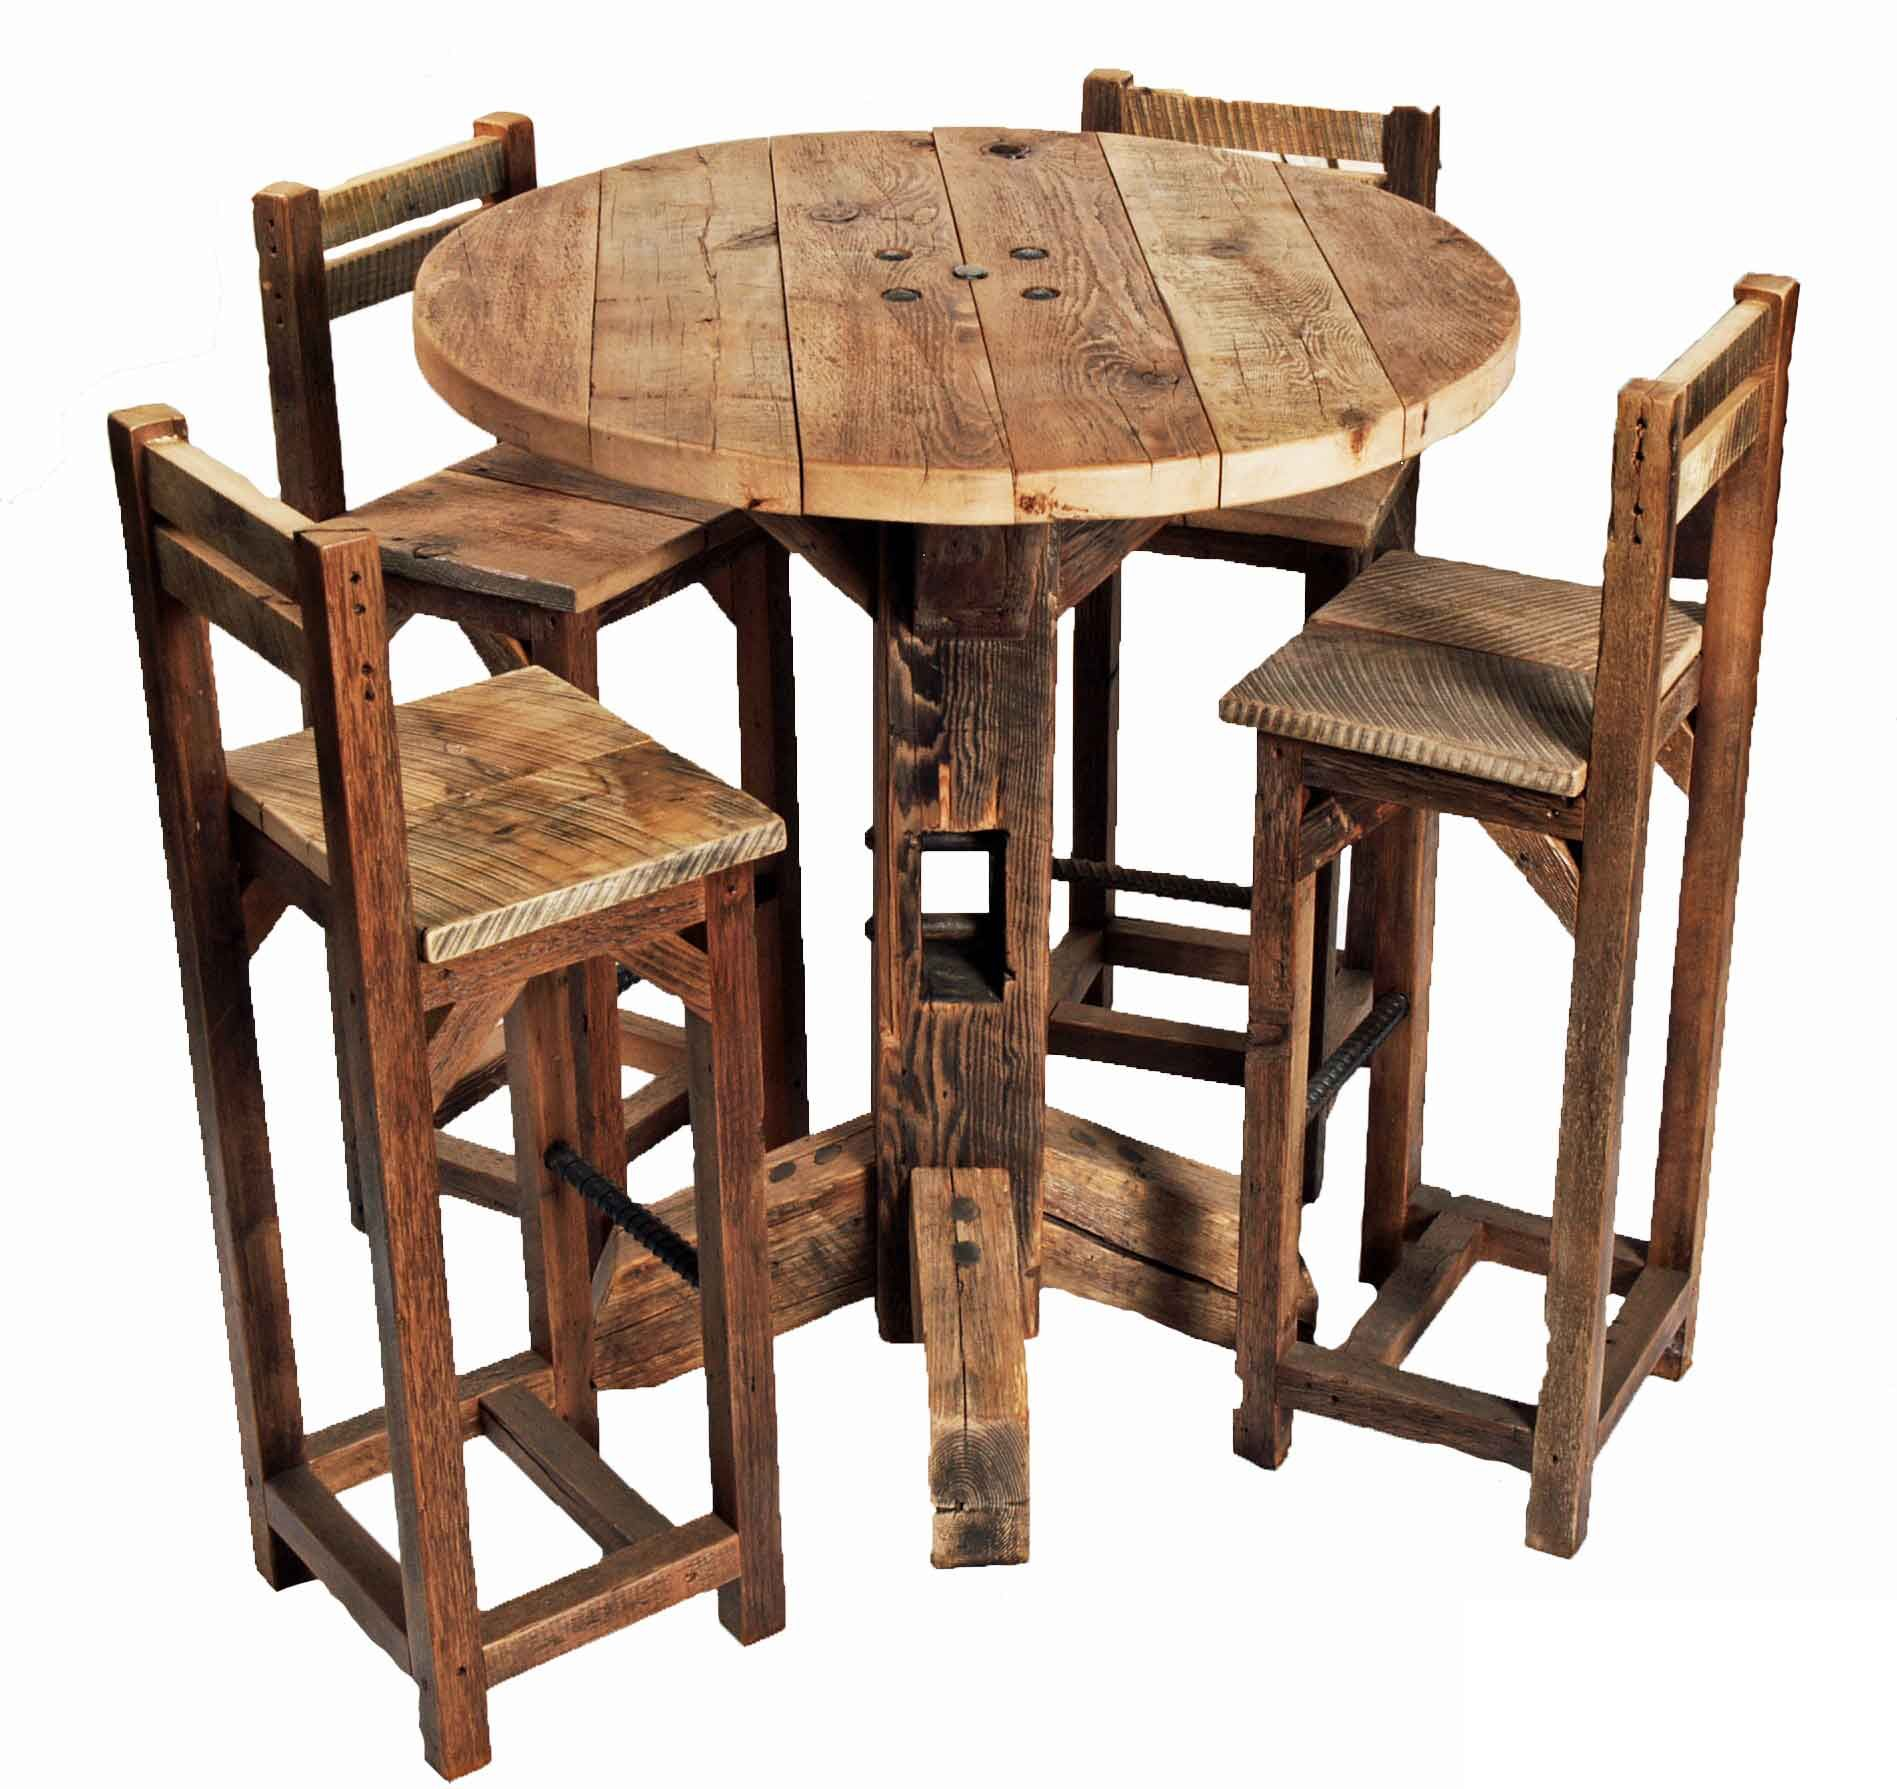 Furniture Old Rustic Small High Round Top Kitchen Table And Chair With High Legs And Back Ideas ~ High Top Kitchen Table Sets  sc 1 st  Pinterest & Furniture Old Rustic Small High Round Top Kitchen Table And Chair ...